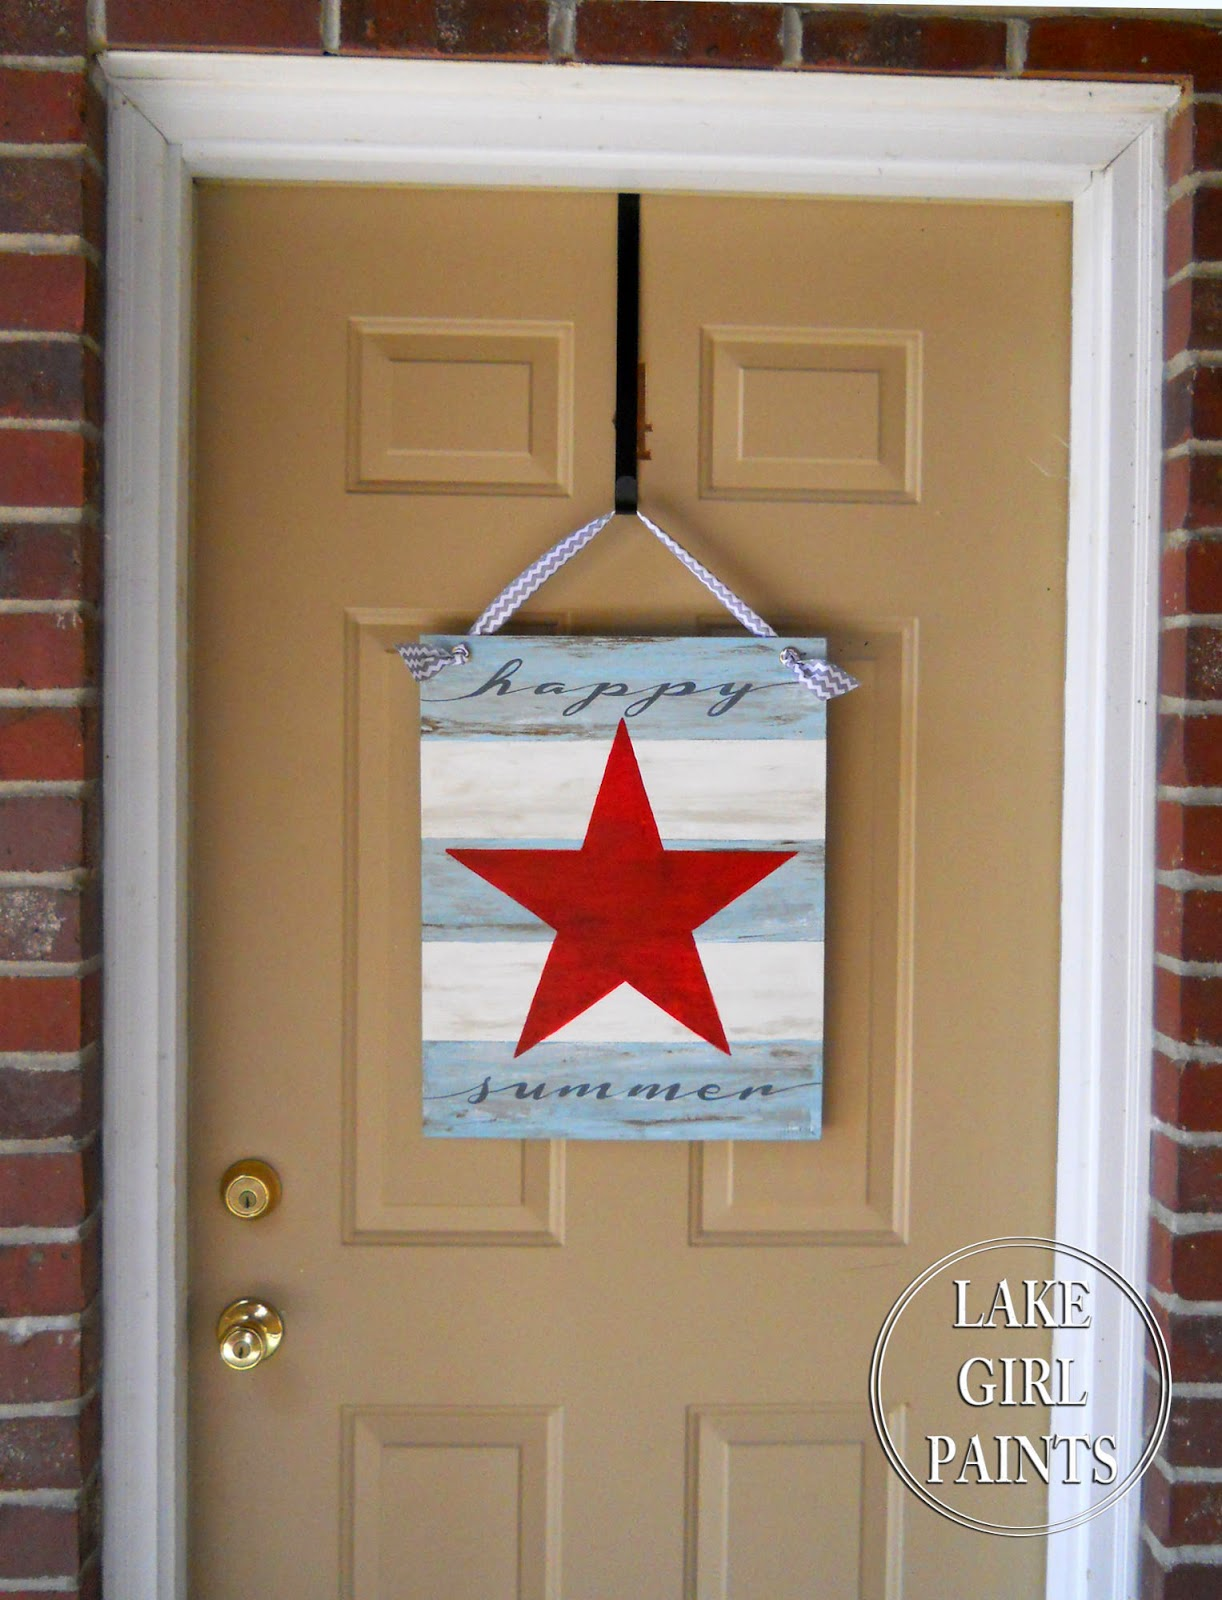 So using a 16 x 20 inch canvas panel & Lake Girl Paints: Happy Summer Star Canvas